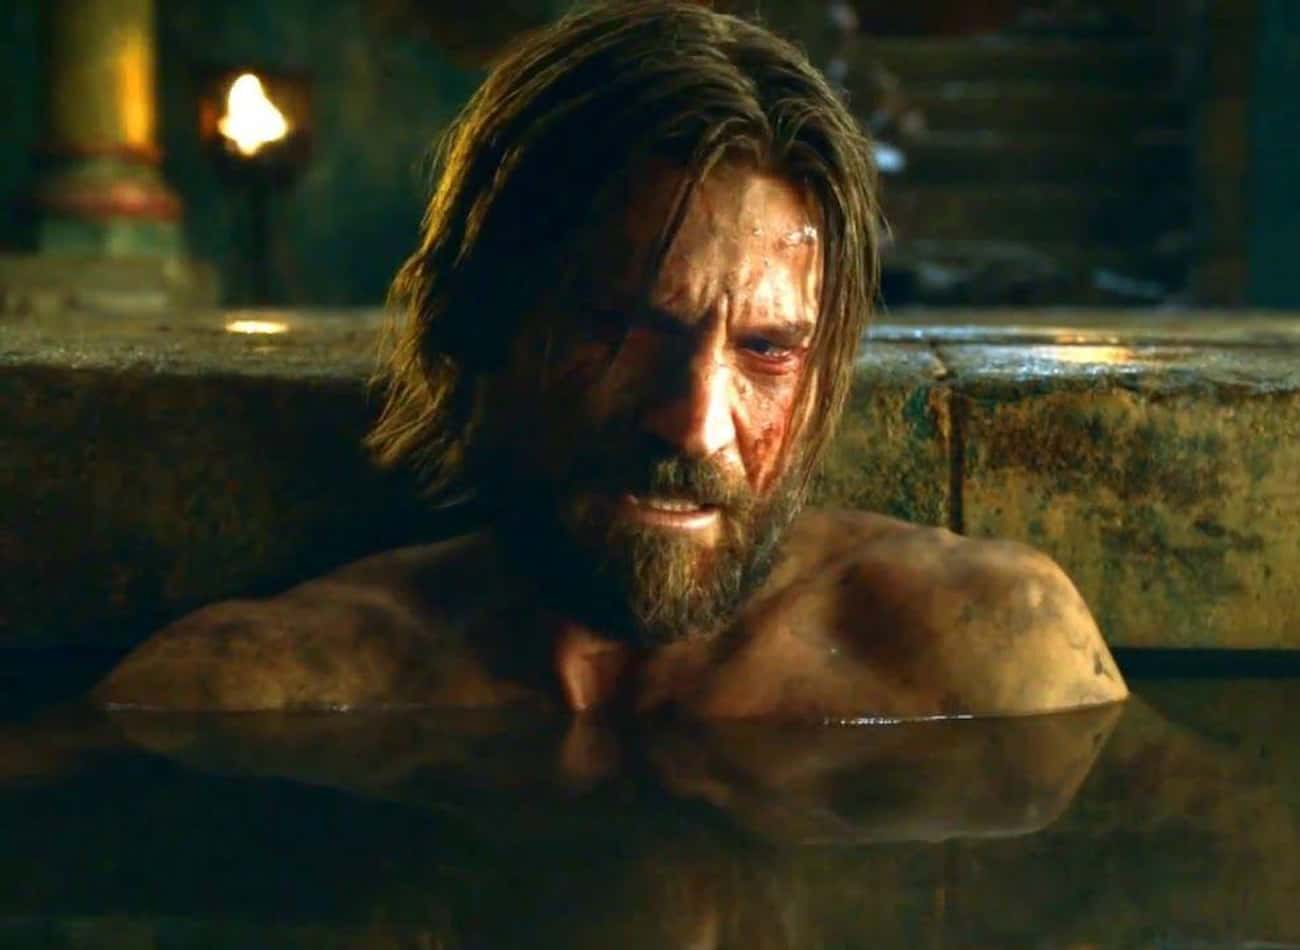 Jaime Shows Vulnerability When He Opens Up To Brienne In The Baths